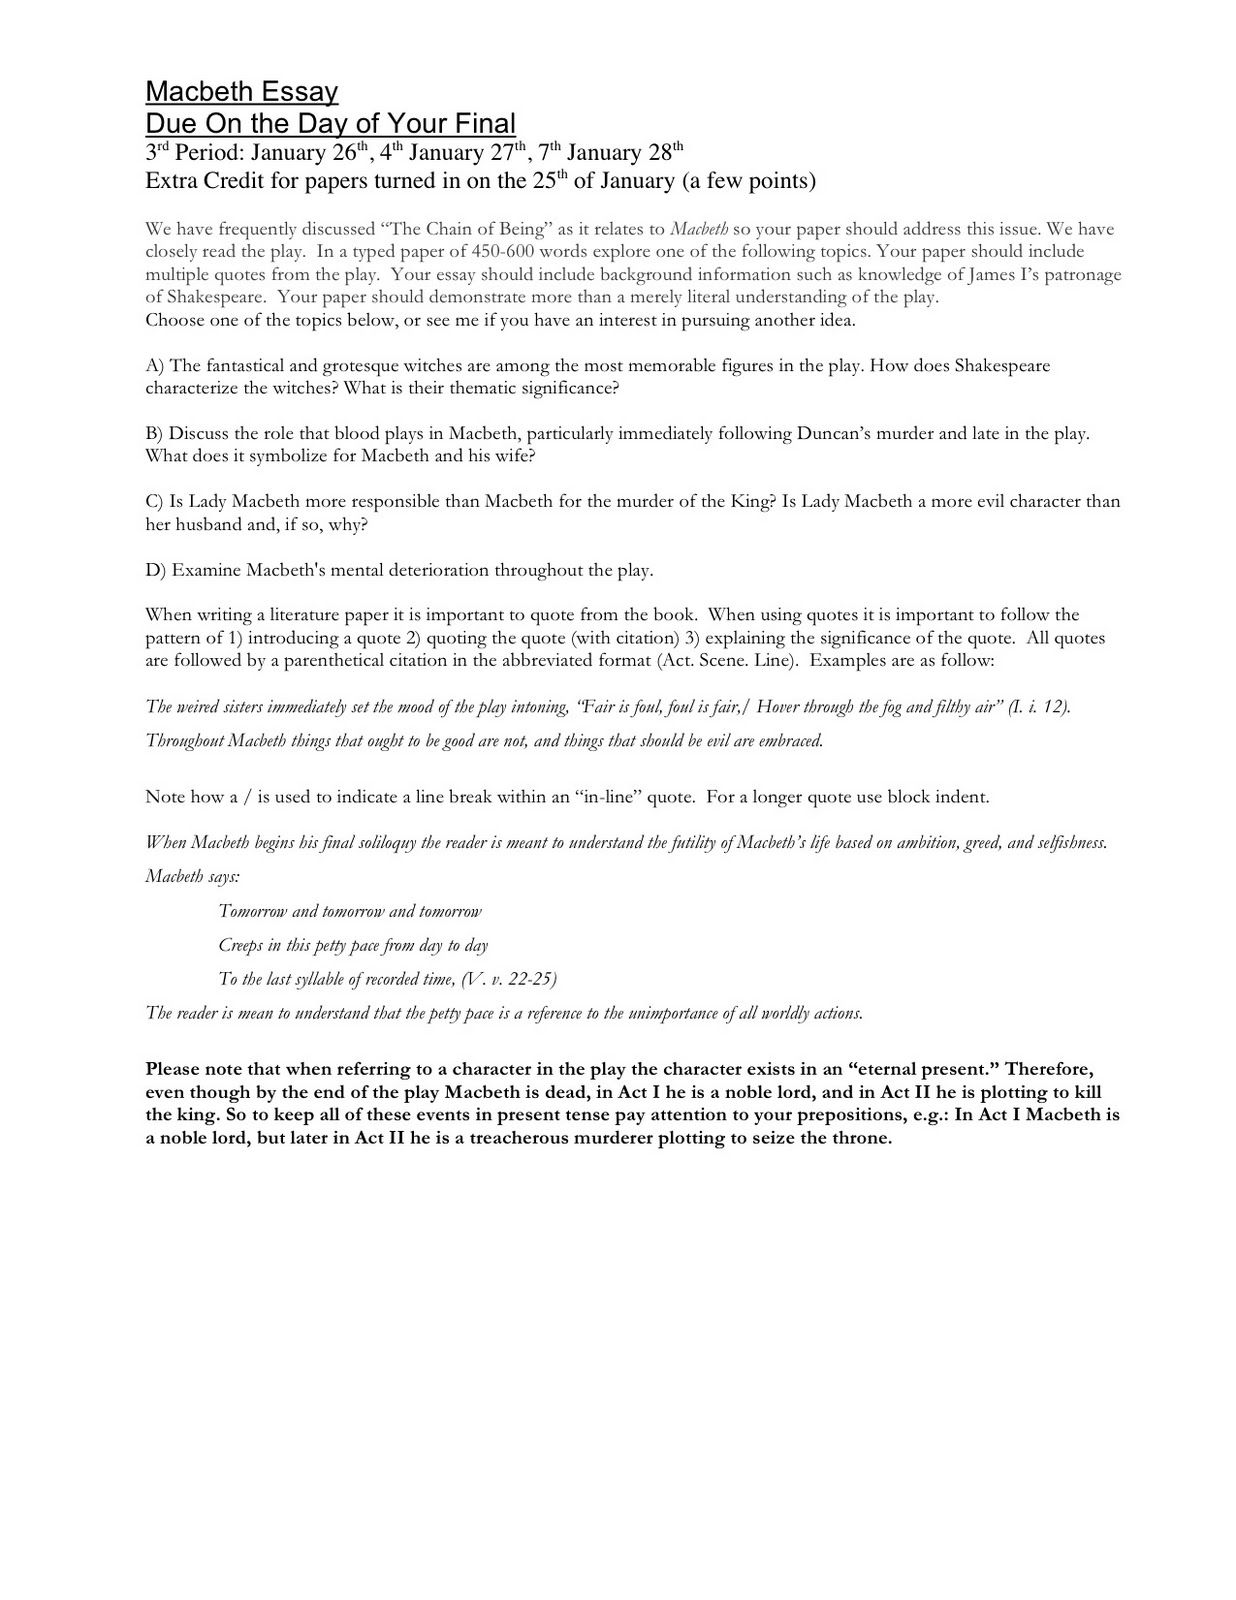 Macbeth Essay Examples (Prompts and Questions) - Free Literary Analysis Essays and Research Papers